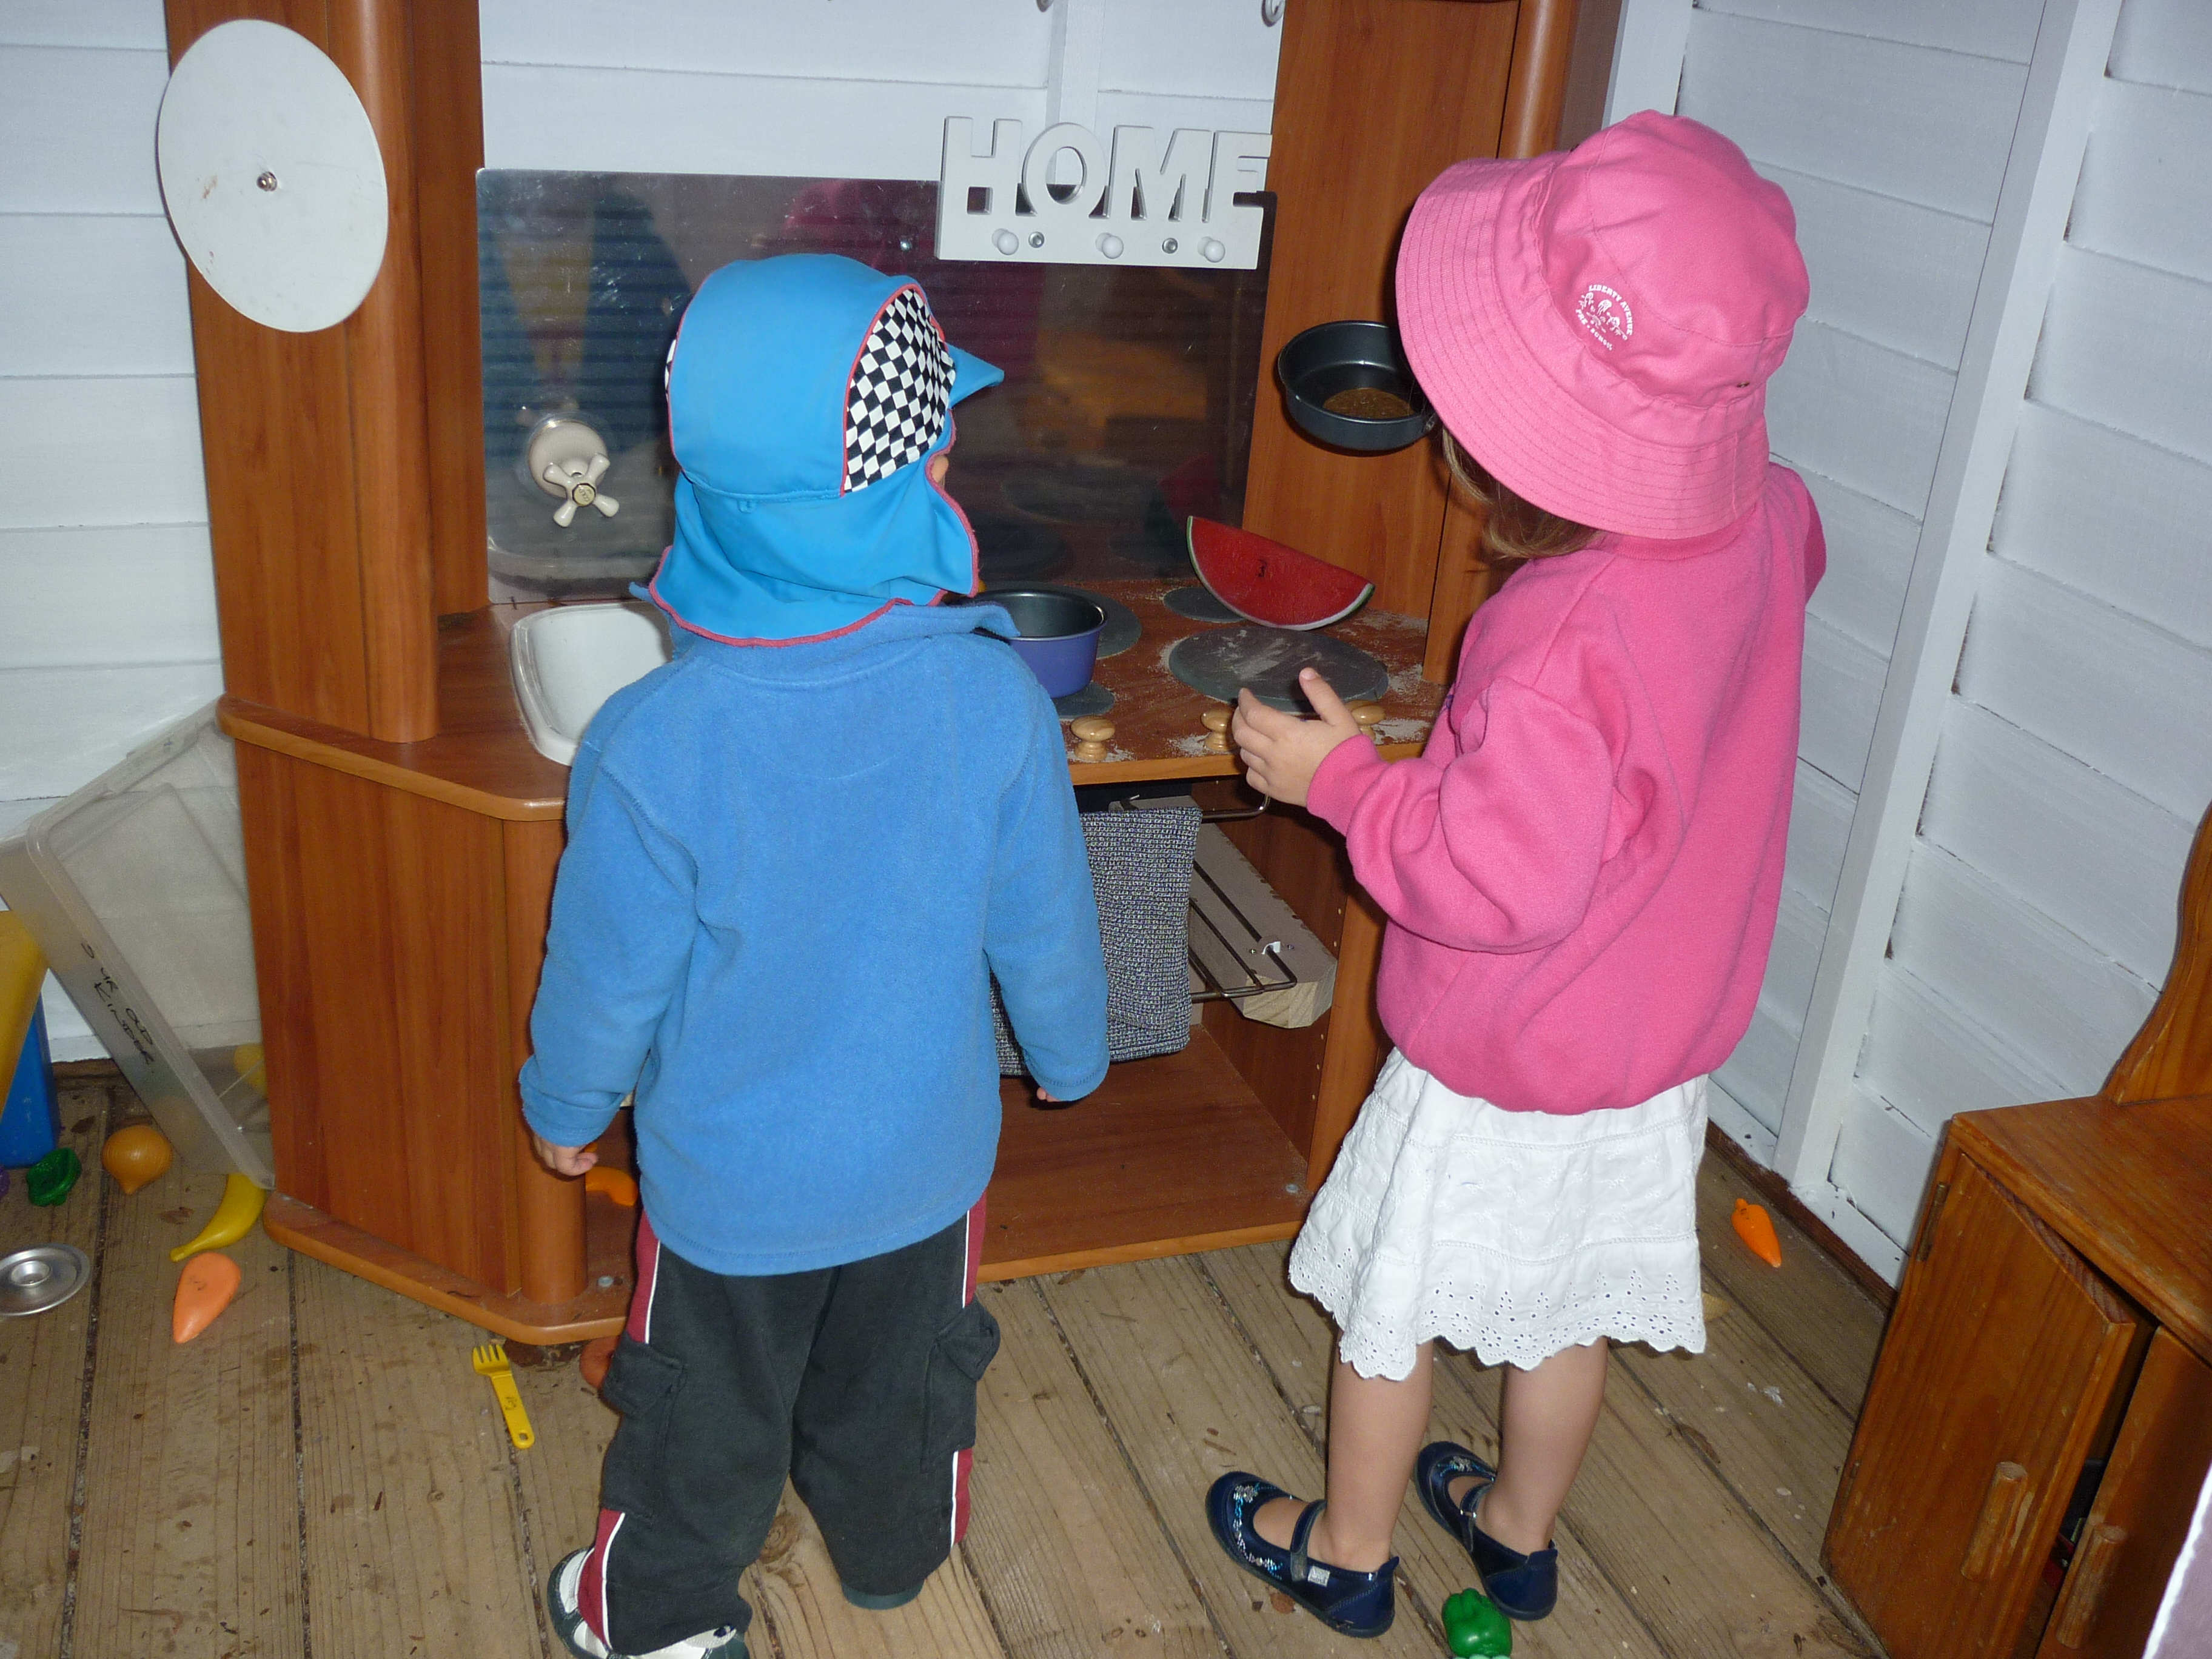 Cooking in the cubby